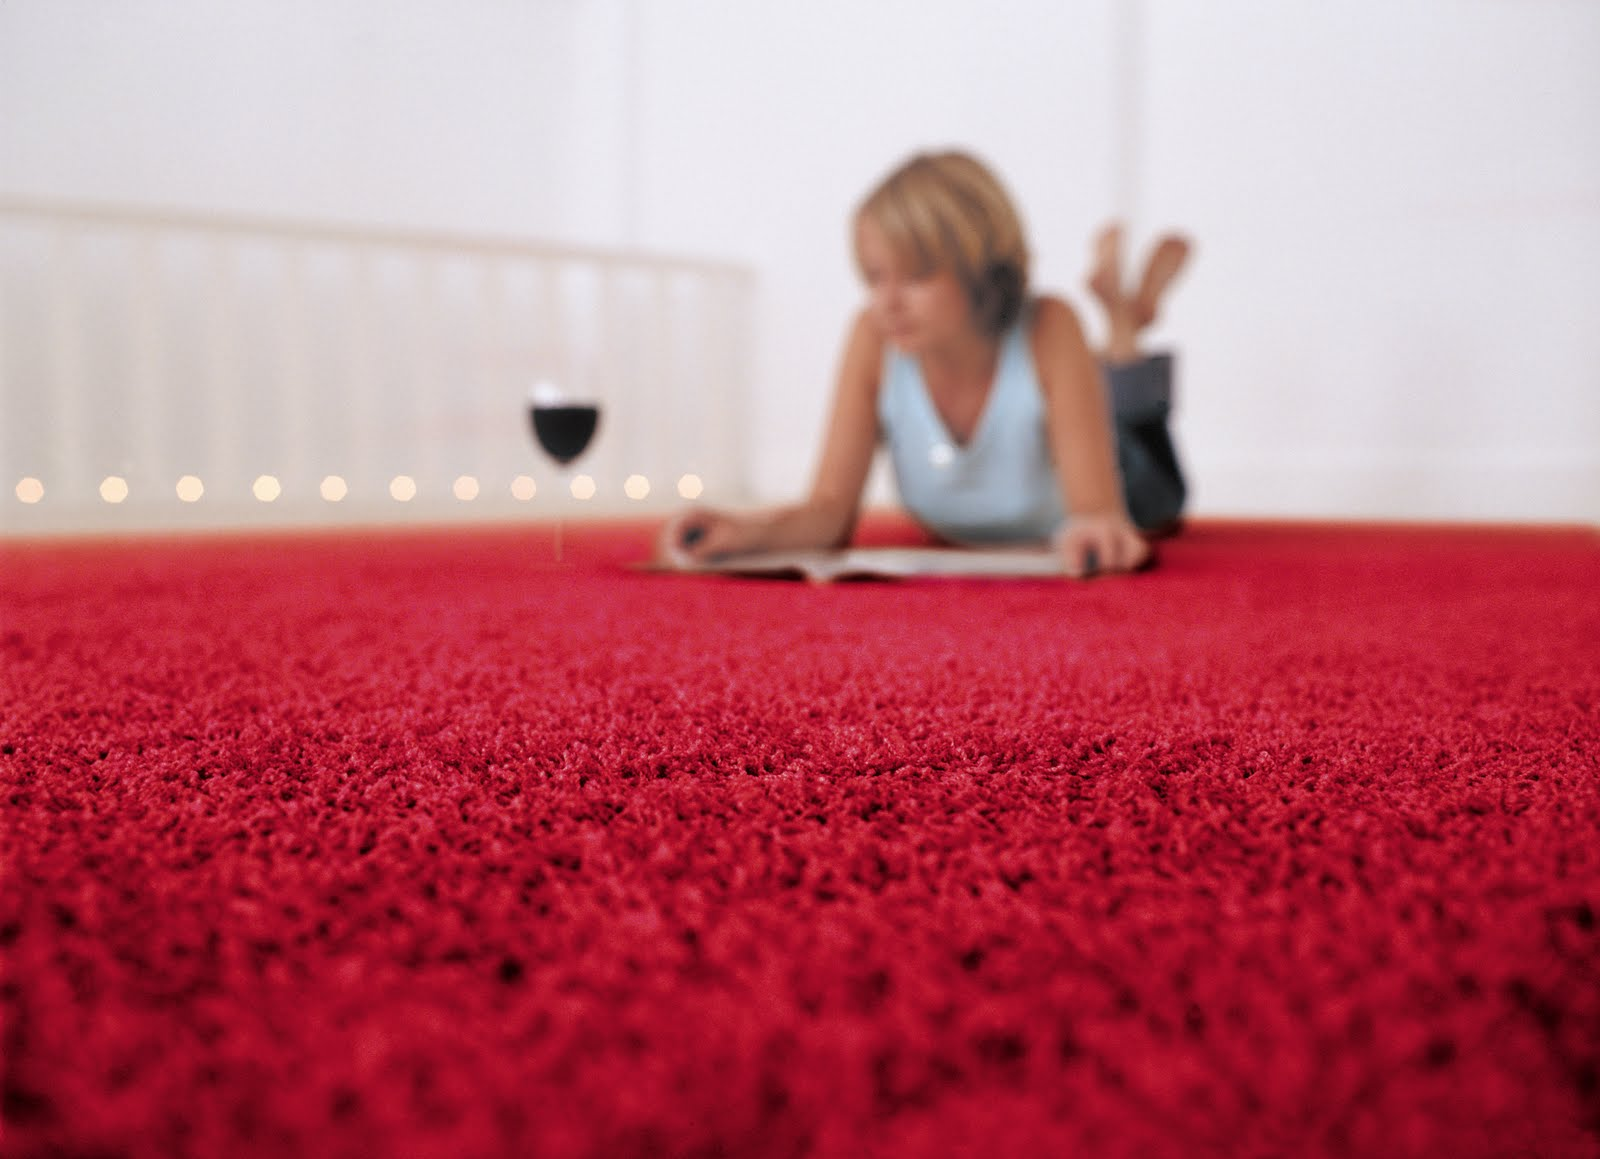 What to look into when purchasing a carpet for your home for What carpet should i buy